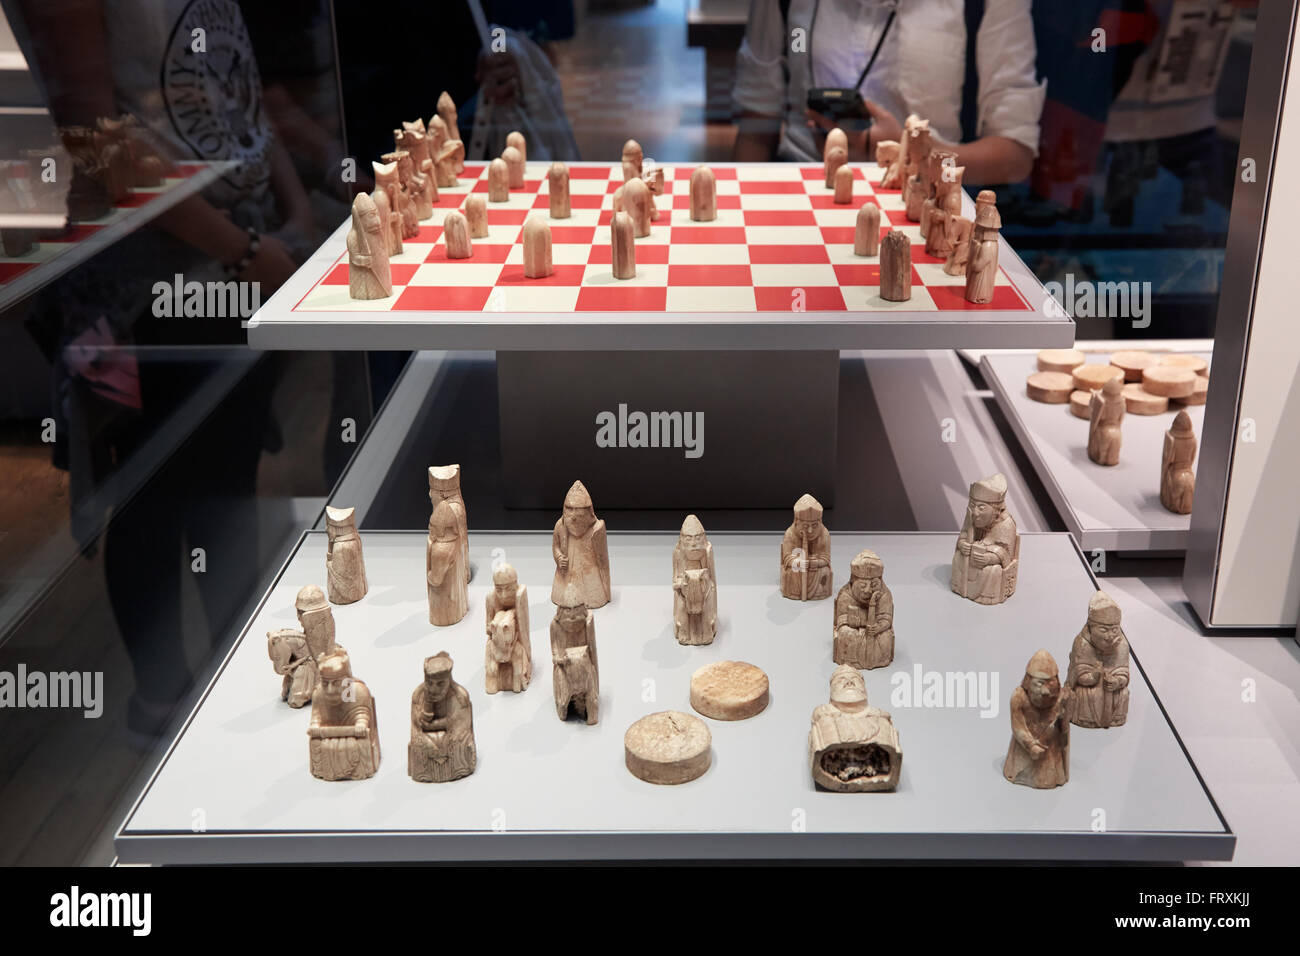 Lewis chessmen, walrus ivory chess pieces in British Museum collection in London - Stock Image